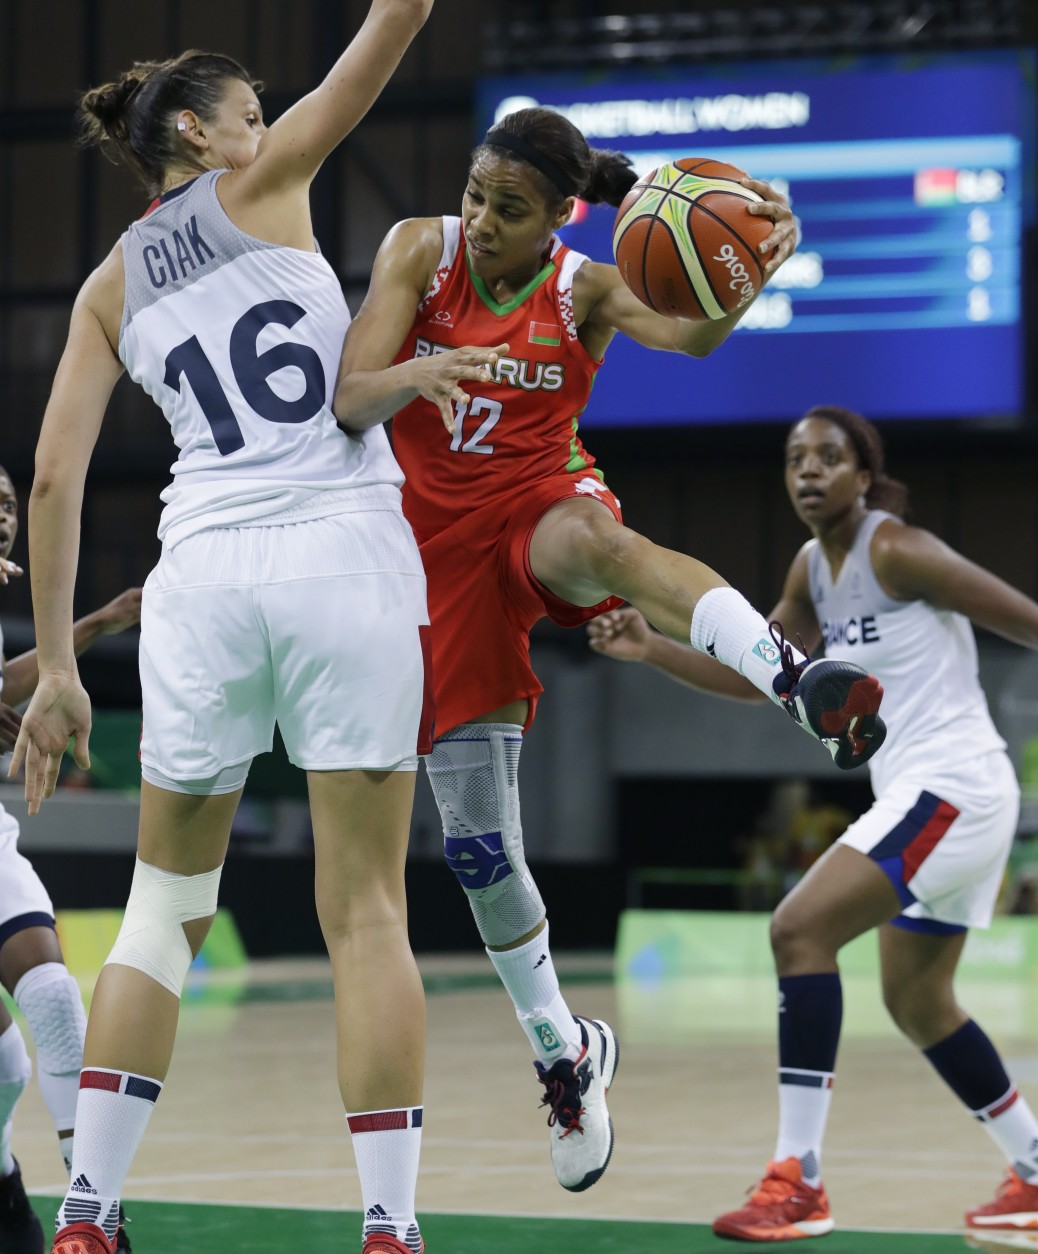 Belarus guard Lindsey Harding (12) passes around the defense of France center Helena Ciak (16) during the first half of a women's basketball game at the Youth Center at the 2016 Summer Olympics in Rio de Janeiro, Brazil, Sunday, Aug. 7, 2016. (AP Photo/Carlos Osorio)